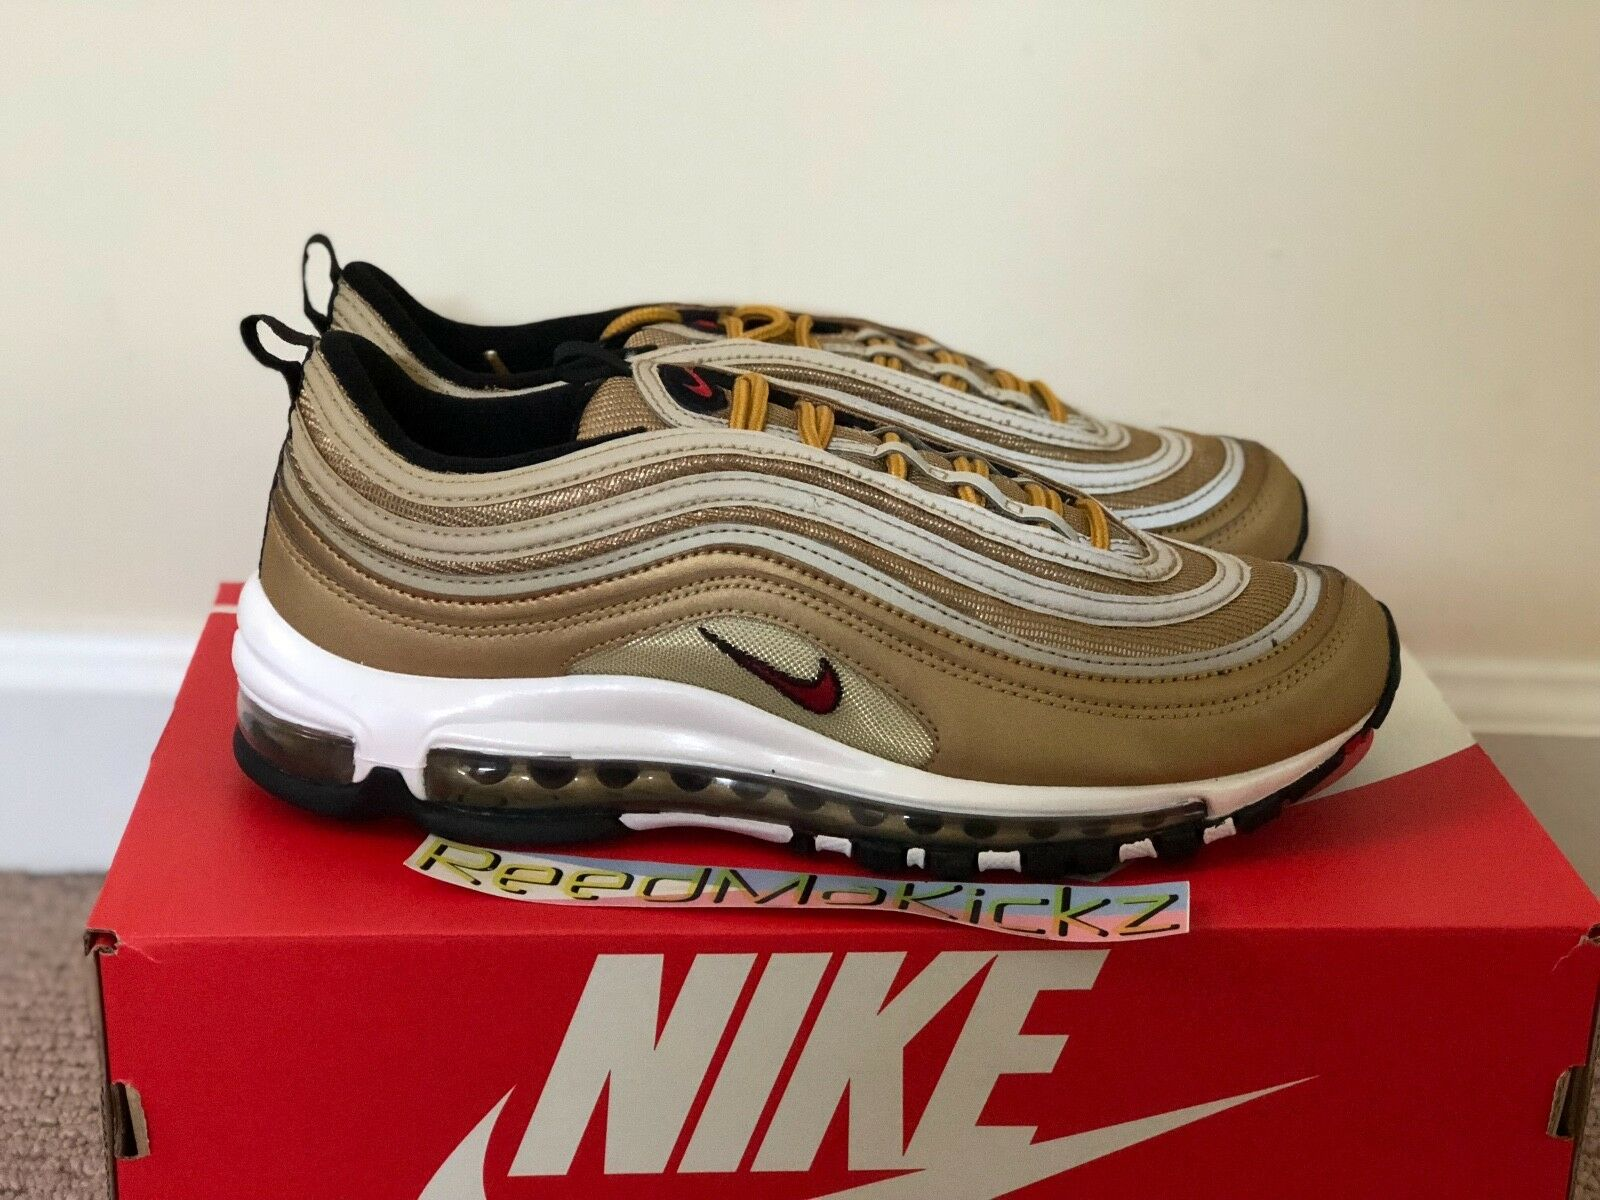 wholesale dealer 5fa48 75421 ... Nike Air Air Air Max 97 OG QS Metallic Gold mens sizes 884421 700  9049c3 ...